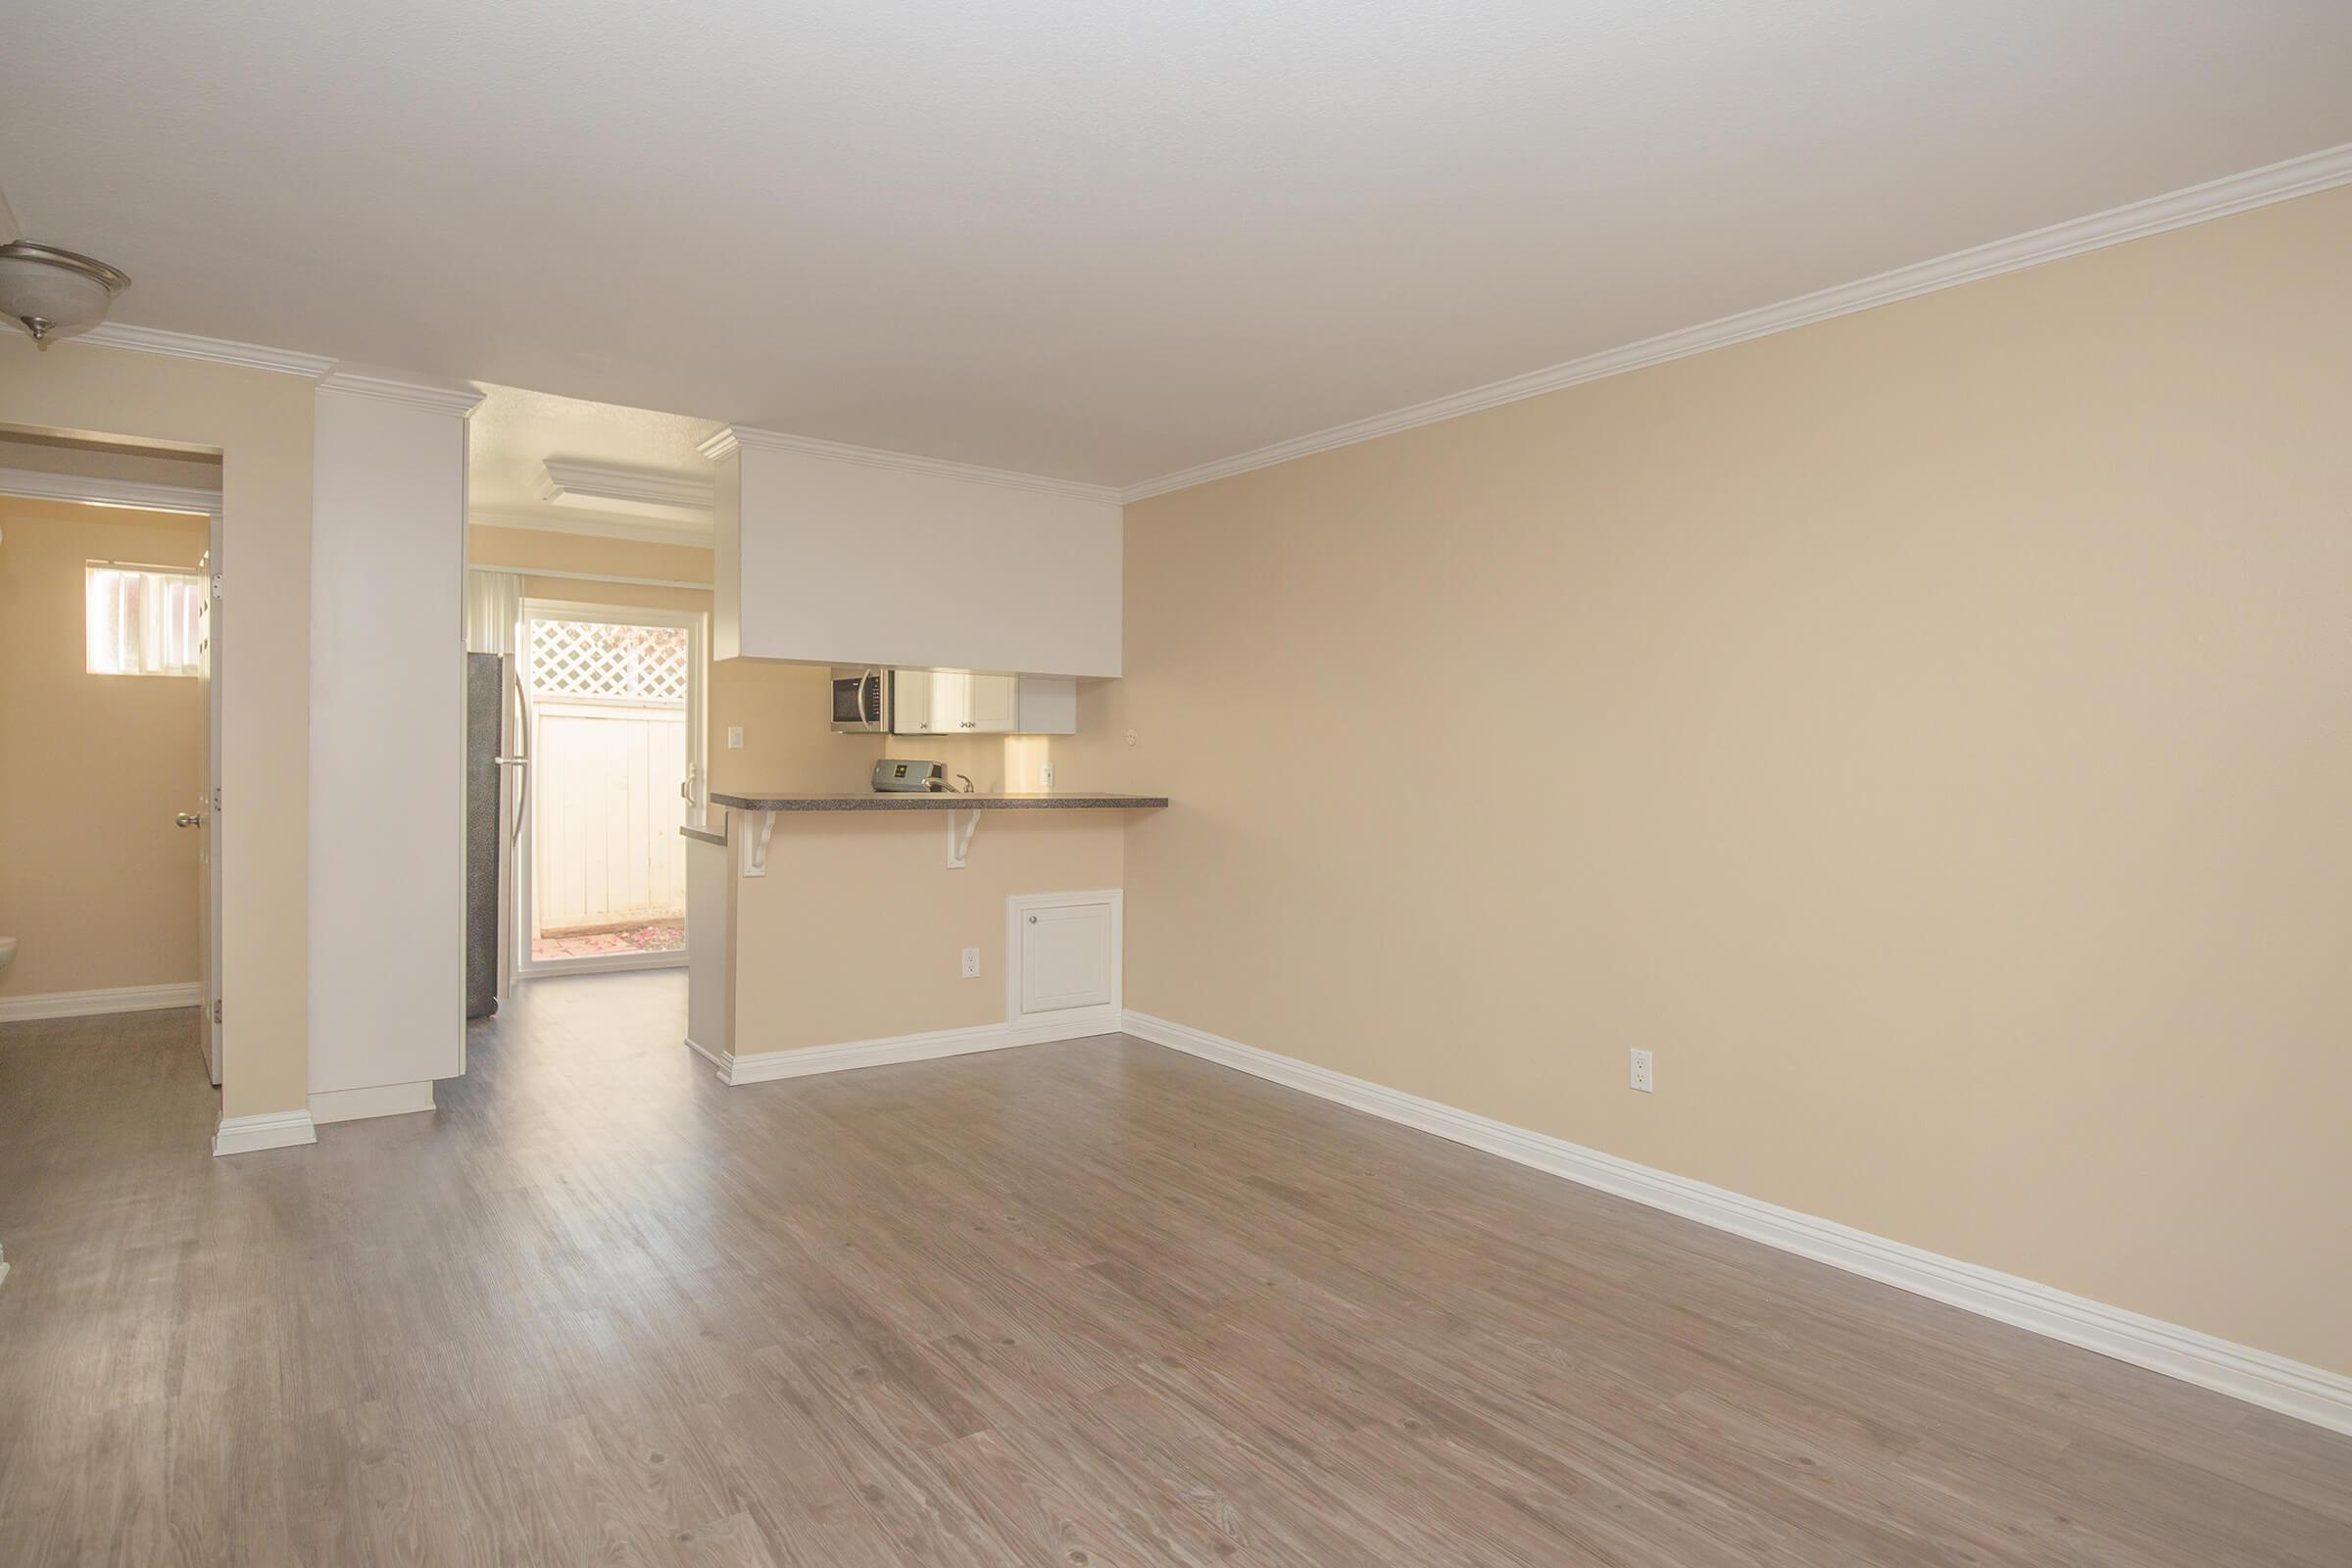 Vacant living room with kitchen in the background